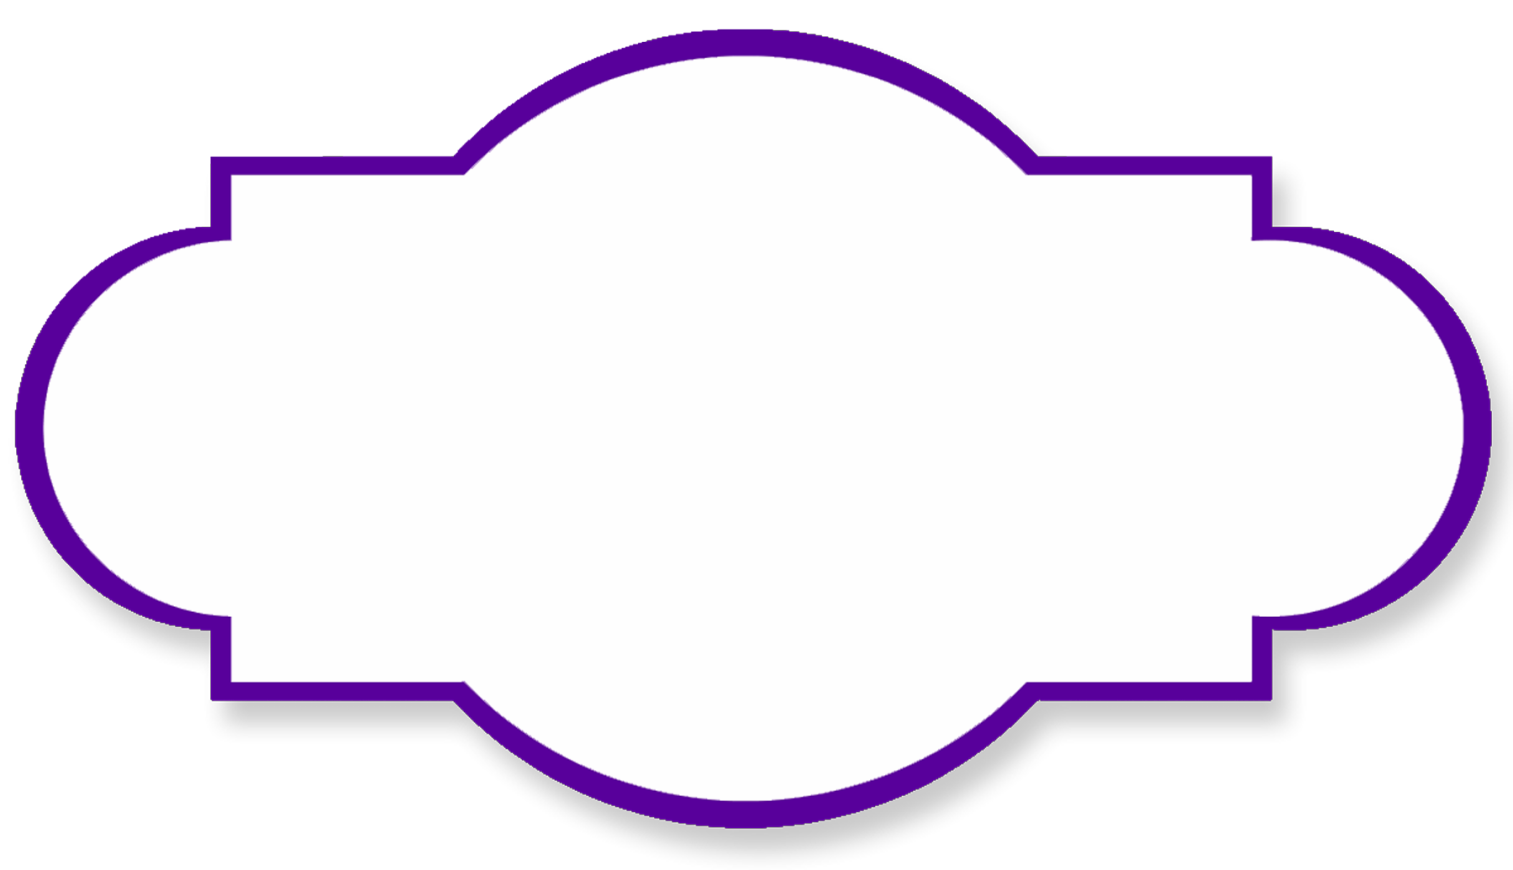 Label clipart bracket. Free shapes cliparts download